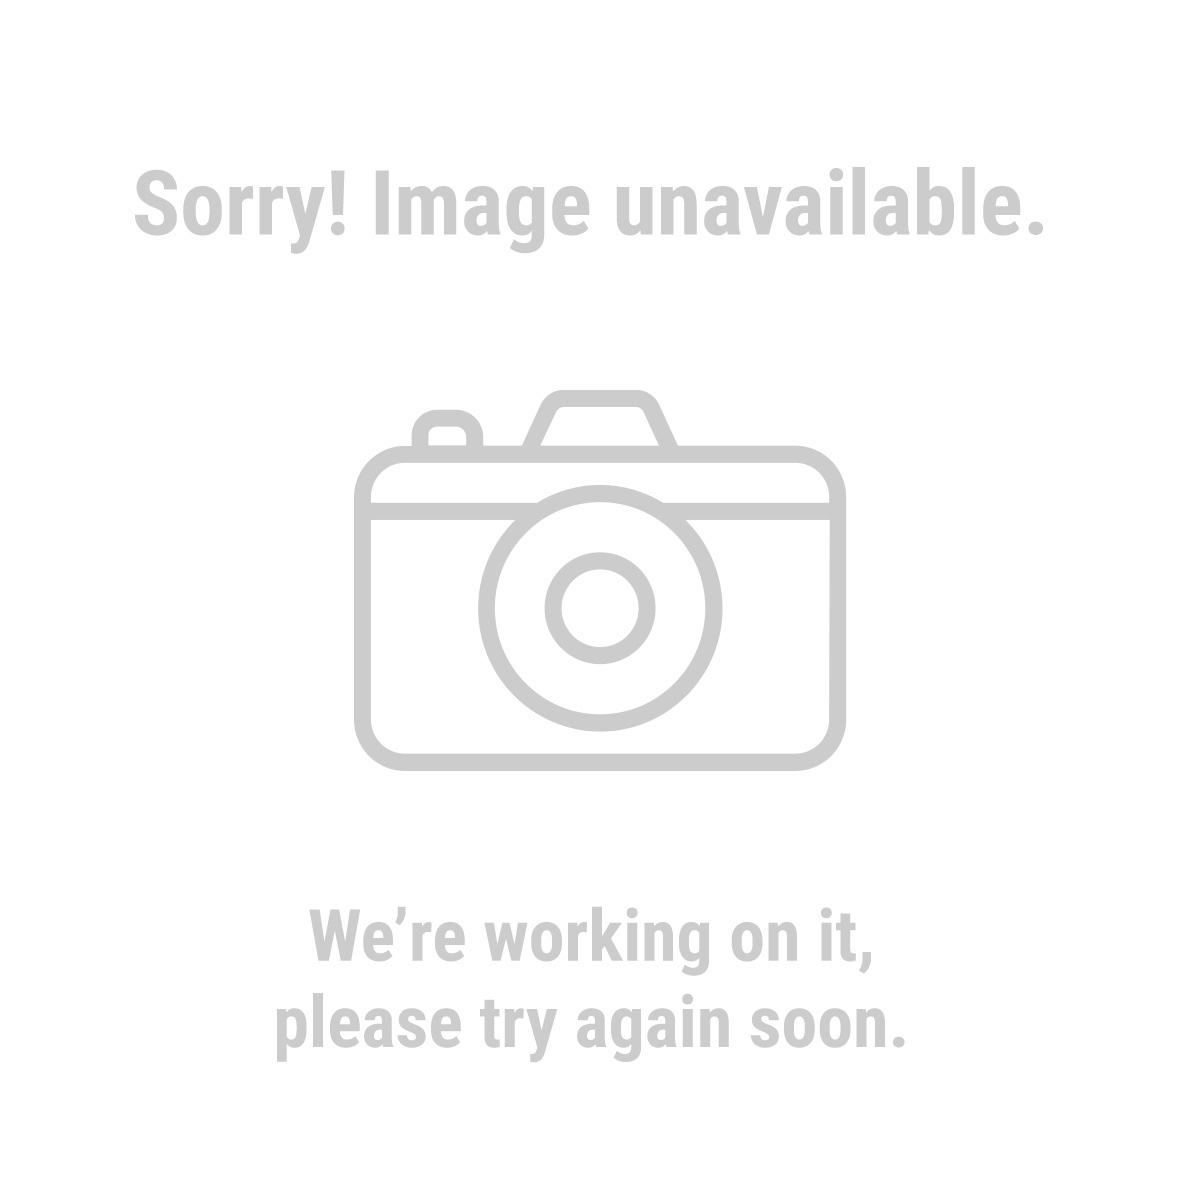 Western Safety 46697 Super Flexible Knee Pads